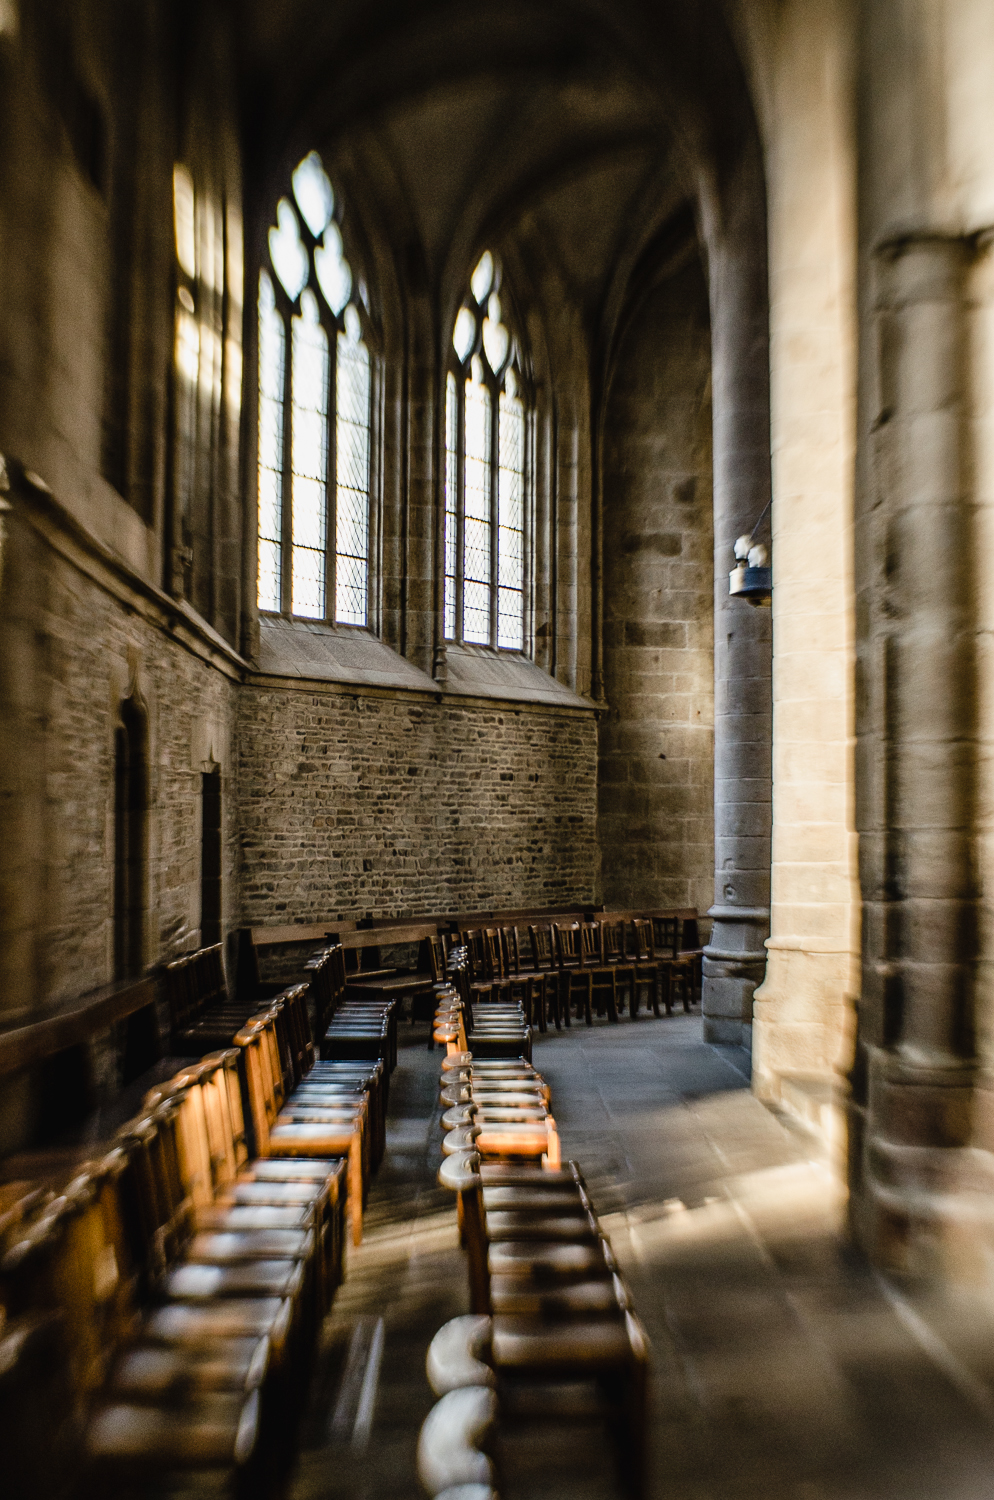 Vire-inside the Church-lensbaby-2-13.jpg